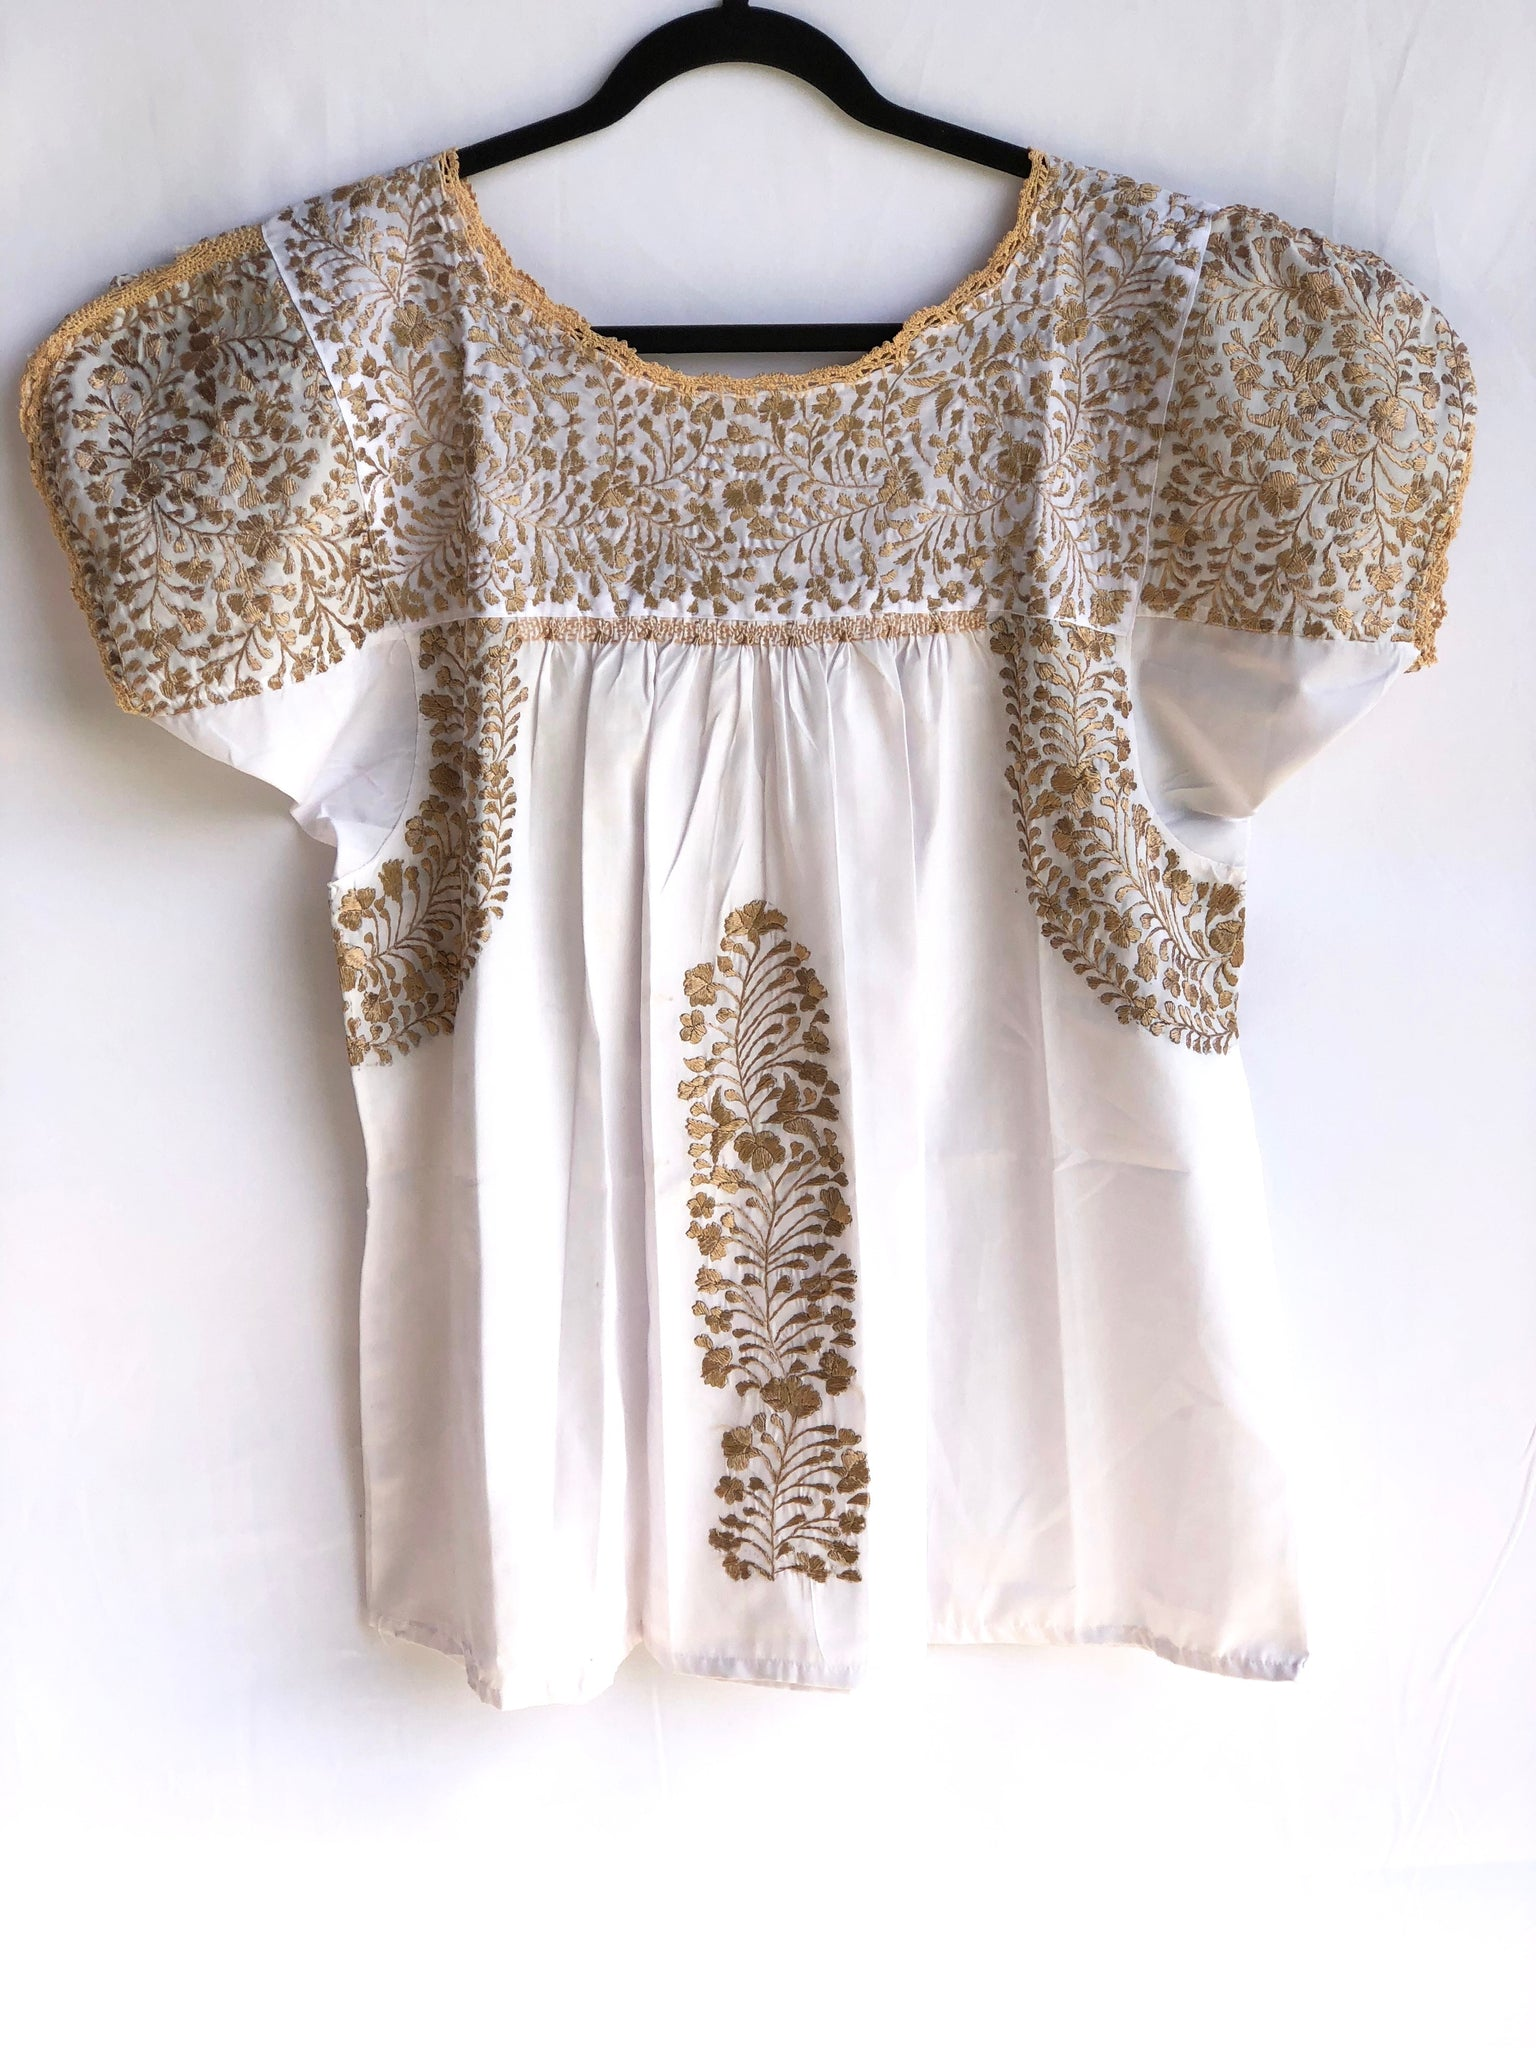 White with Gold San Antonino Blouse M/L